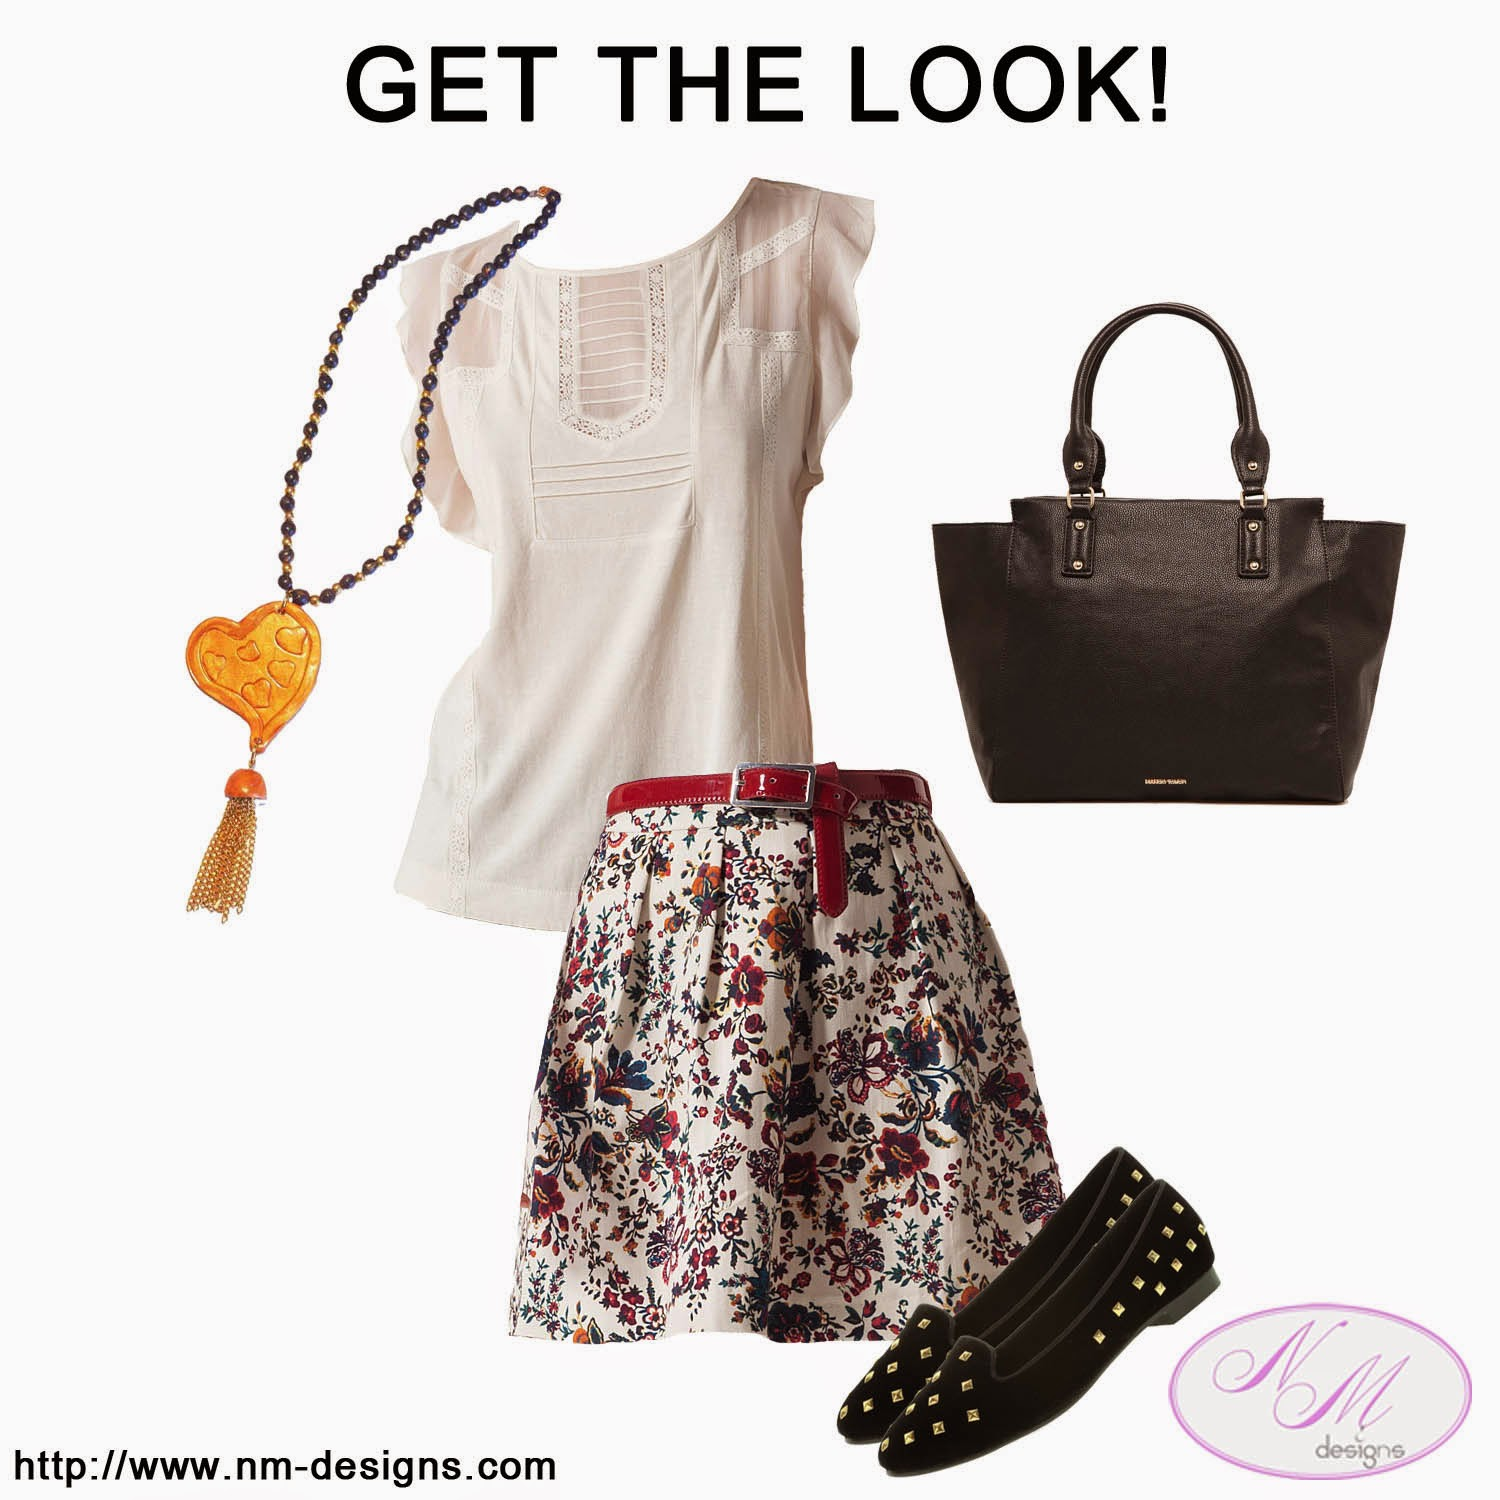 """GET THE LOOK"" from September 4, 2014"